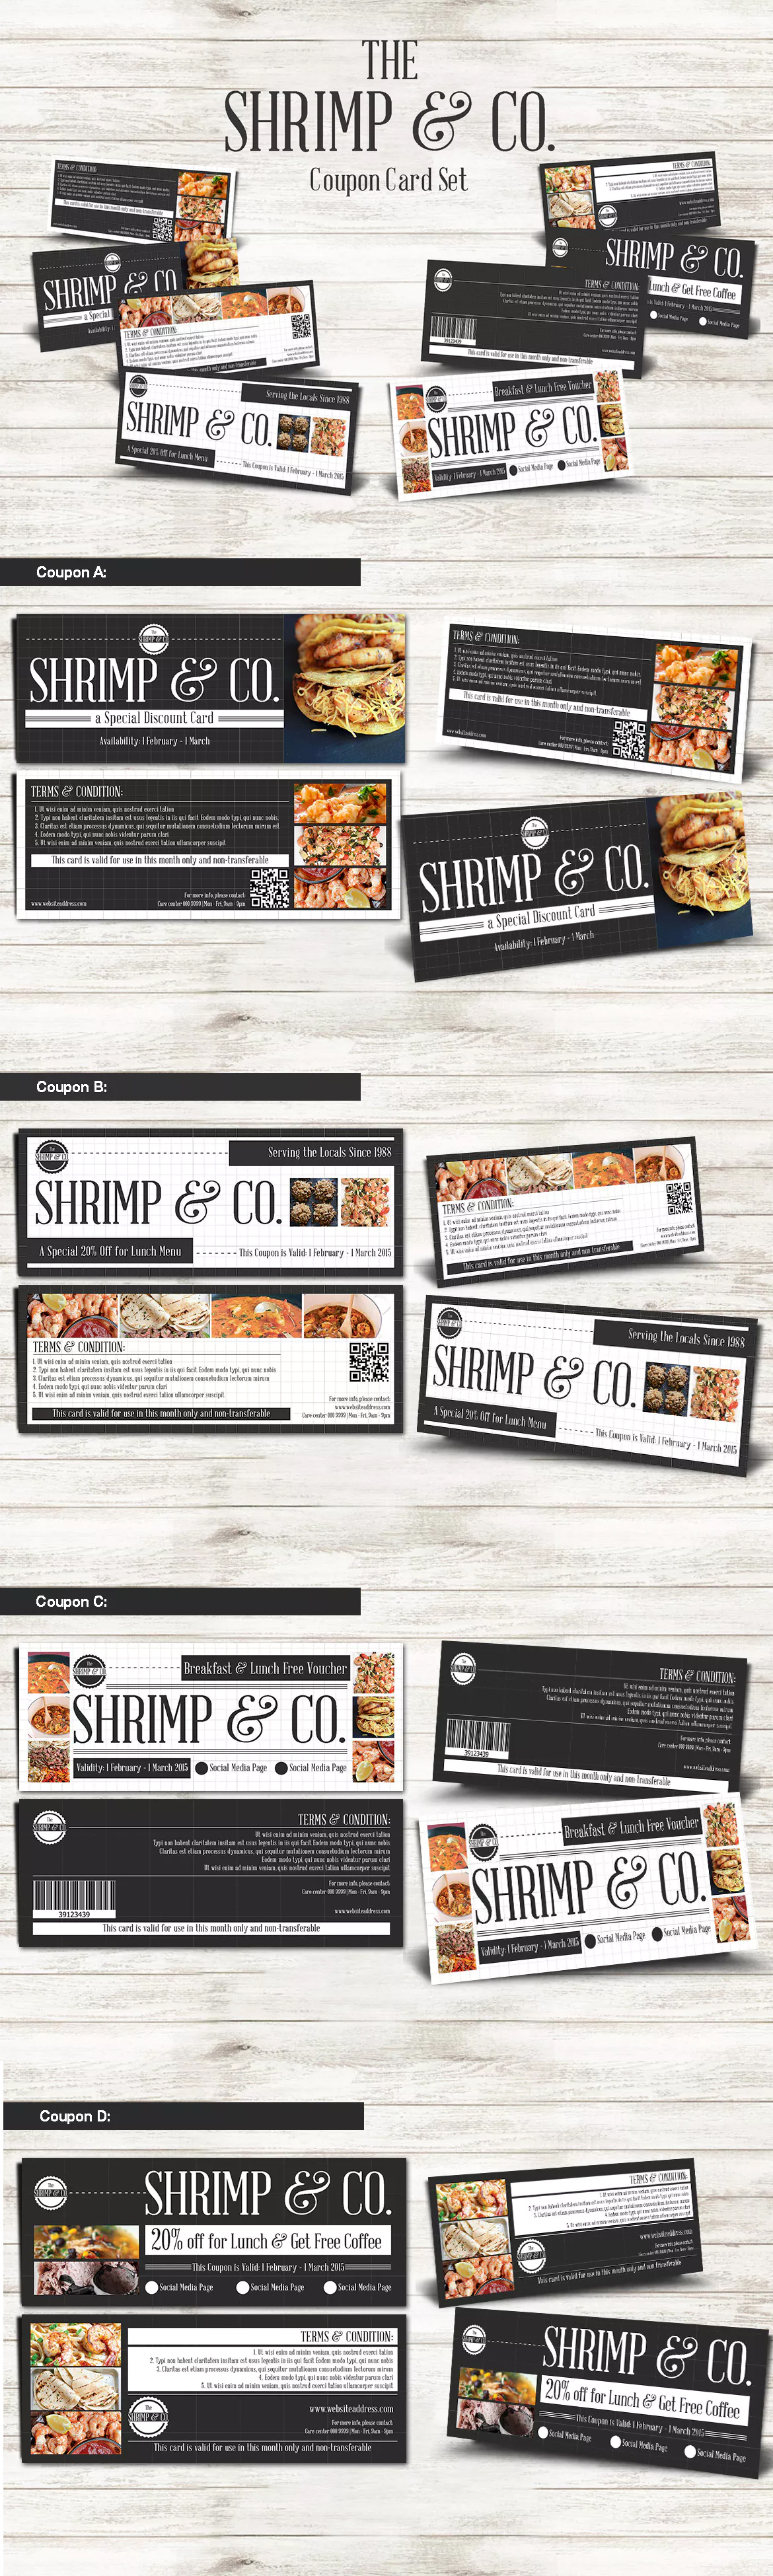 Seafood Restaurant Coupon Card Template PSD | Card & Invite Design ...